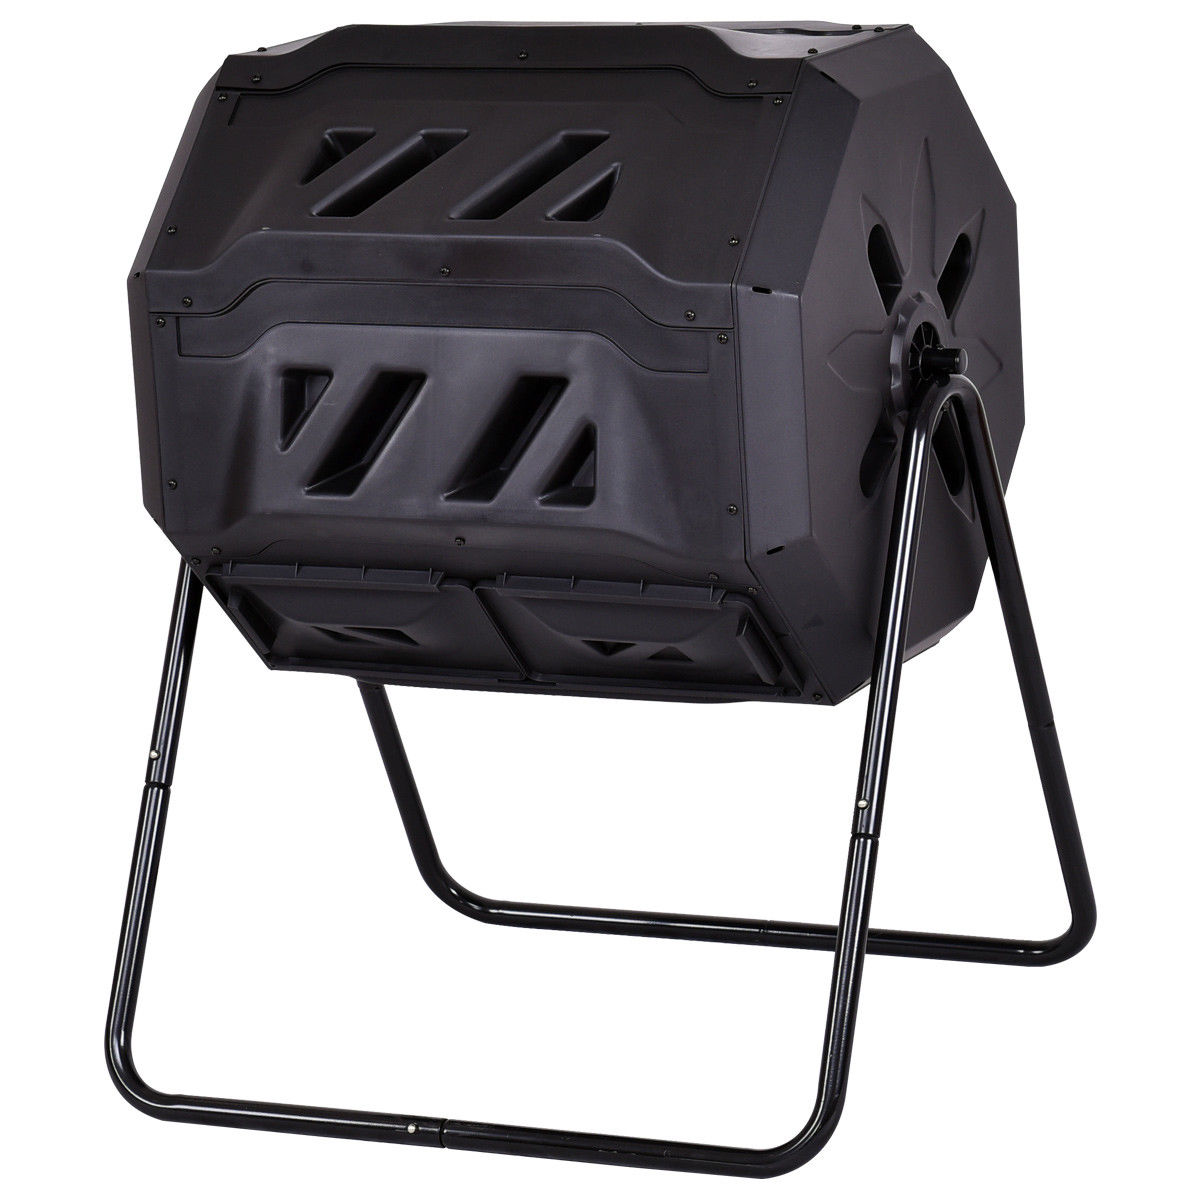 Costway Compost Tumbler 43-Gallon Garden Waste Bin Grass Food Trash Barrel Fertilizer by Costway